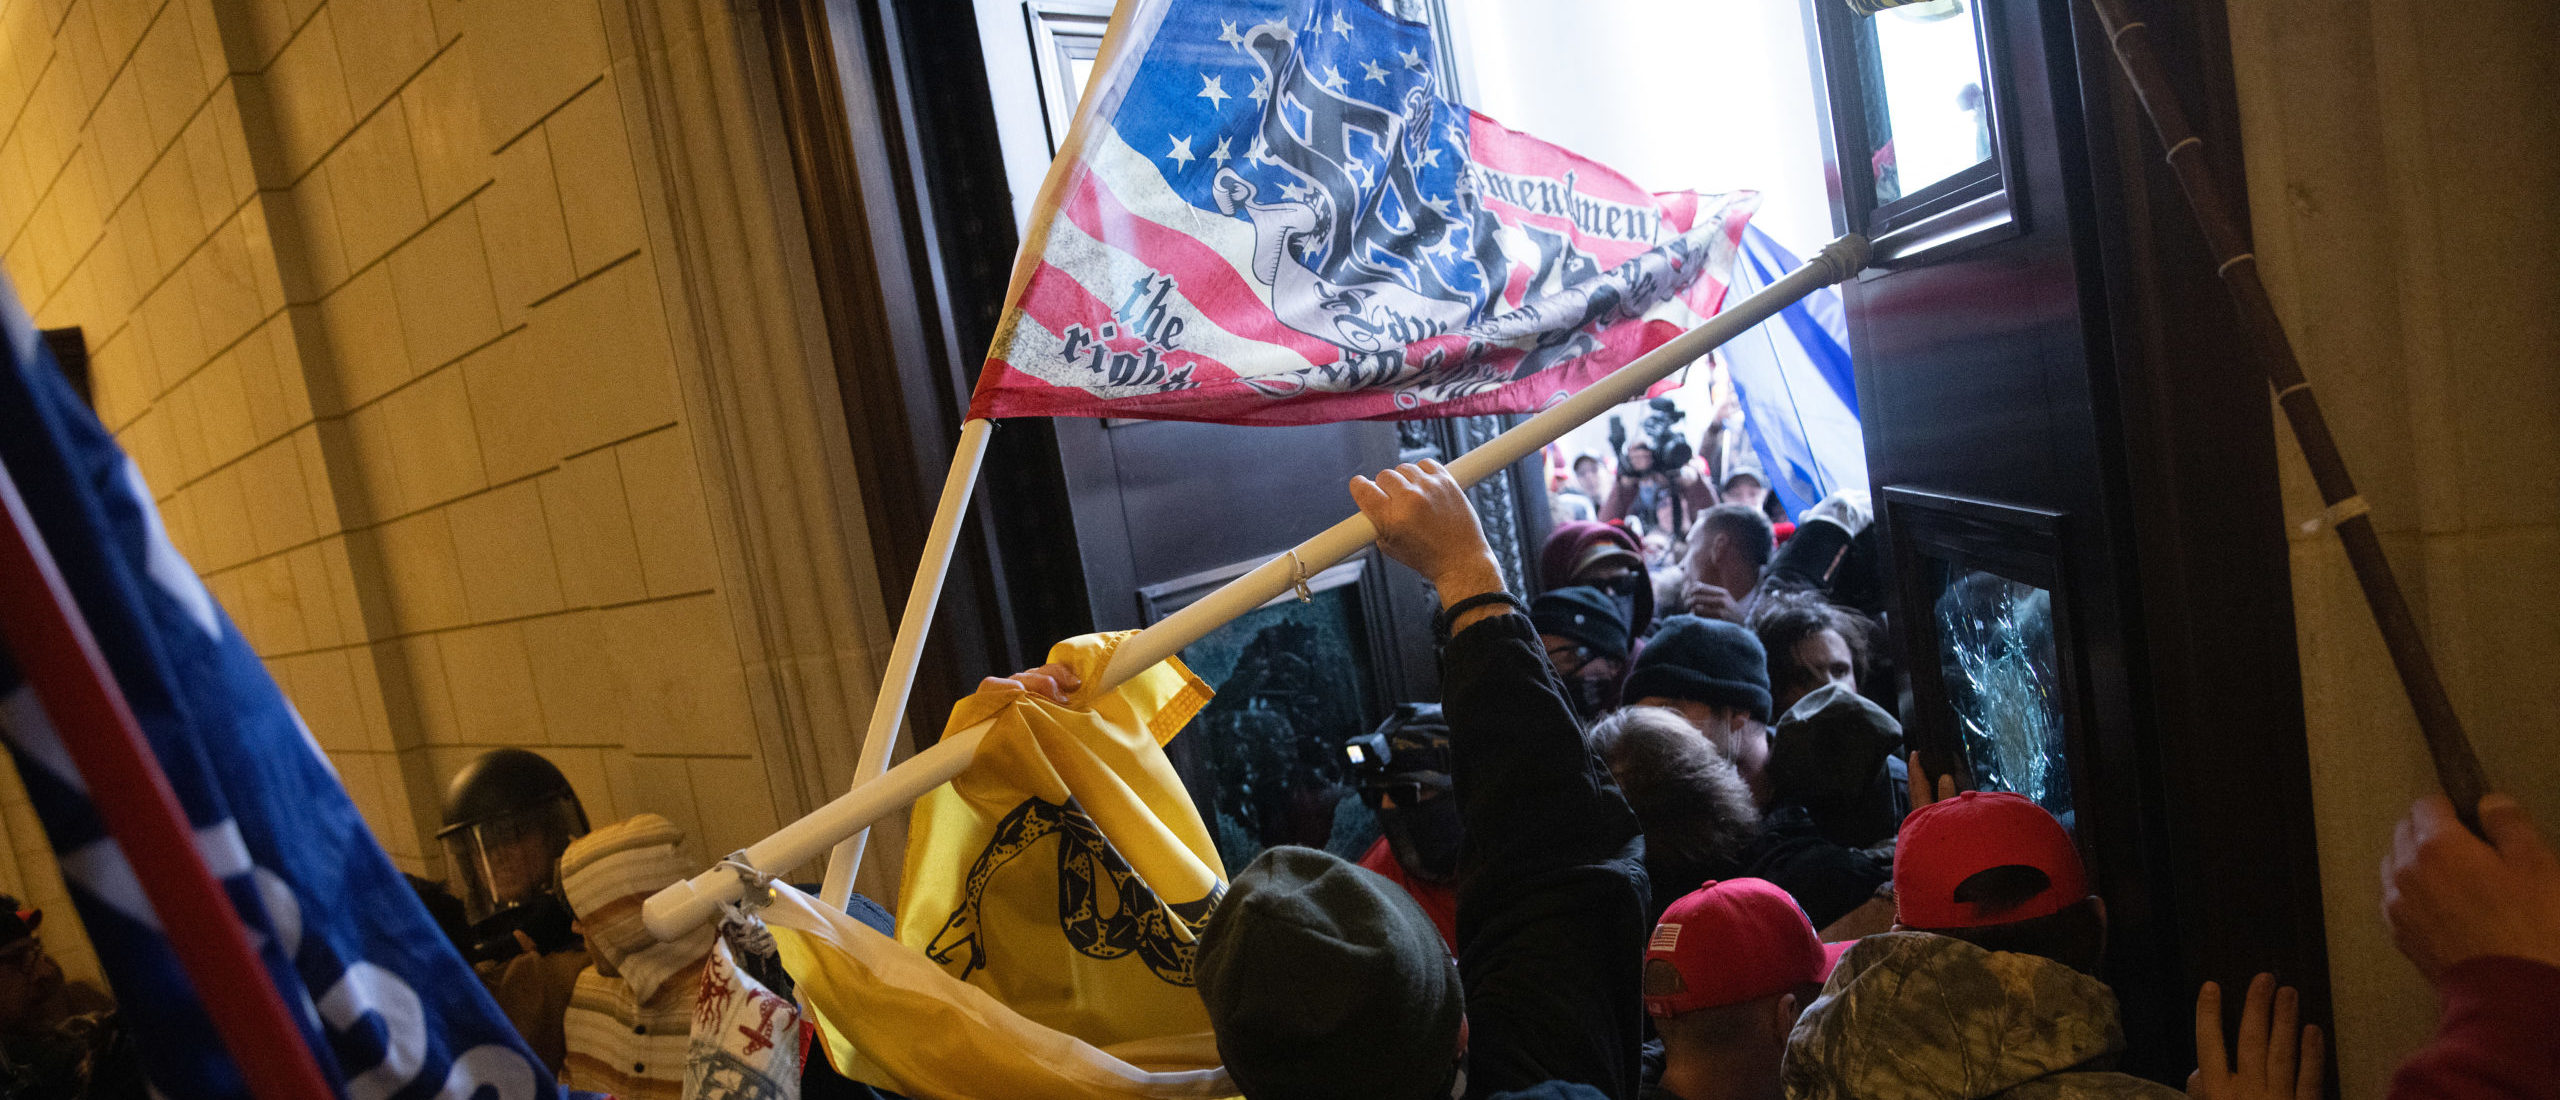 WASHINGTON, DC - JANUARY 06: A pro-Trump mob breaks into the U.S. Capitol on January 06, 2021 in Washington, DC. (Photo by Win McNamee/Getty Images)